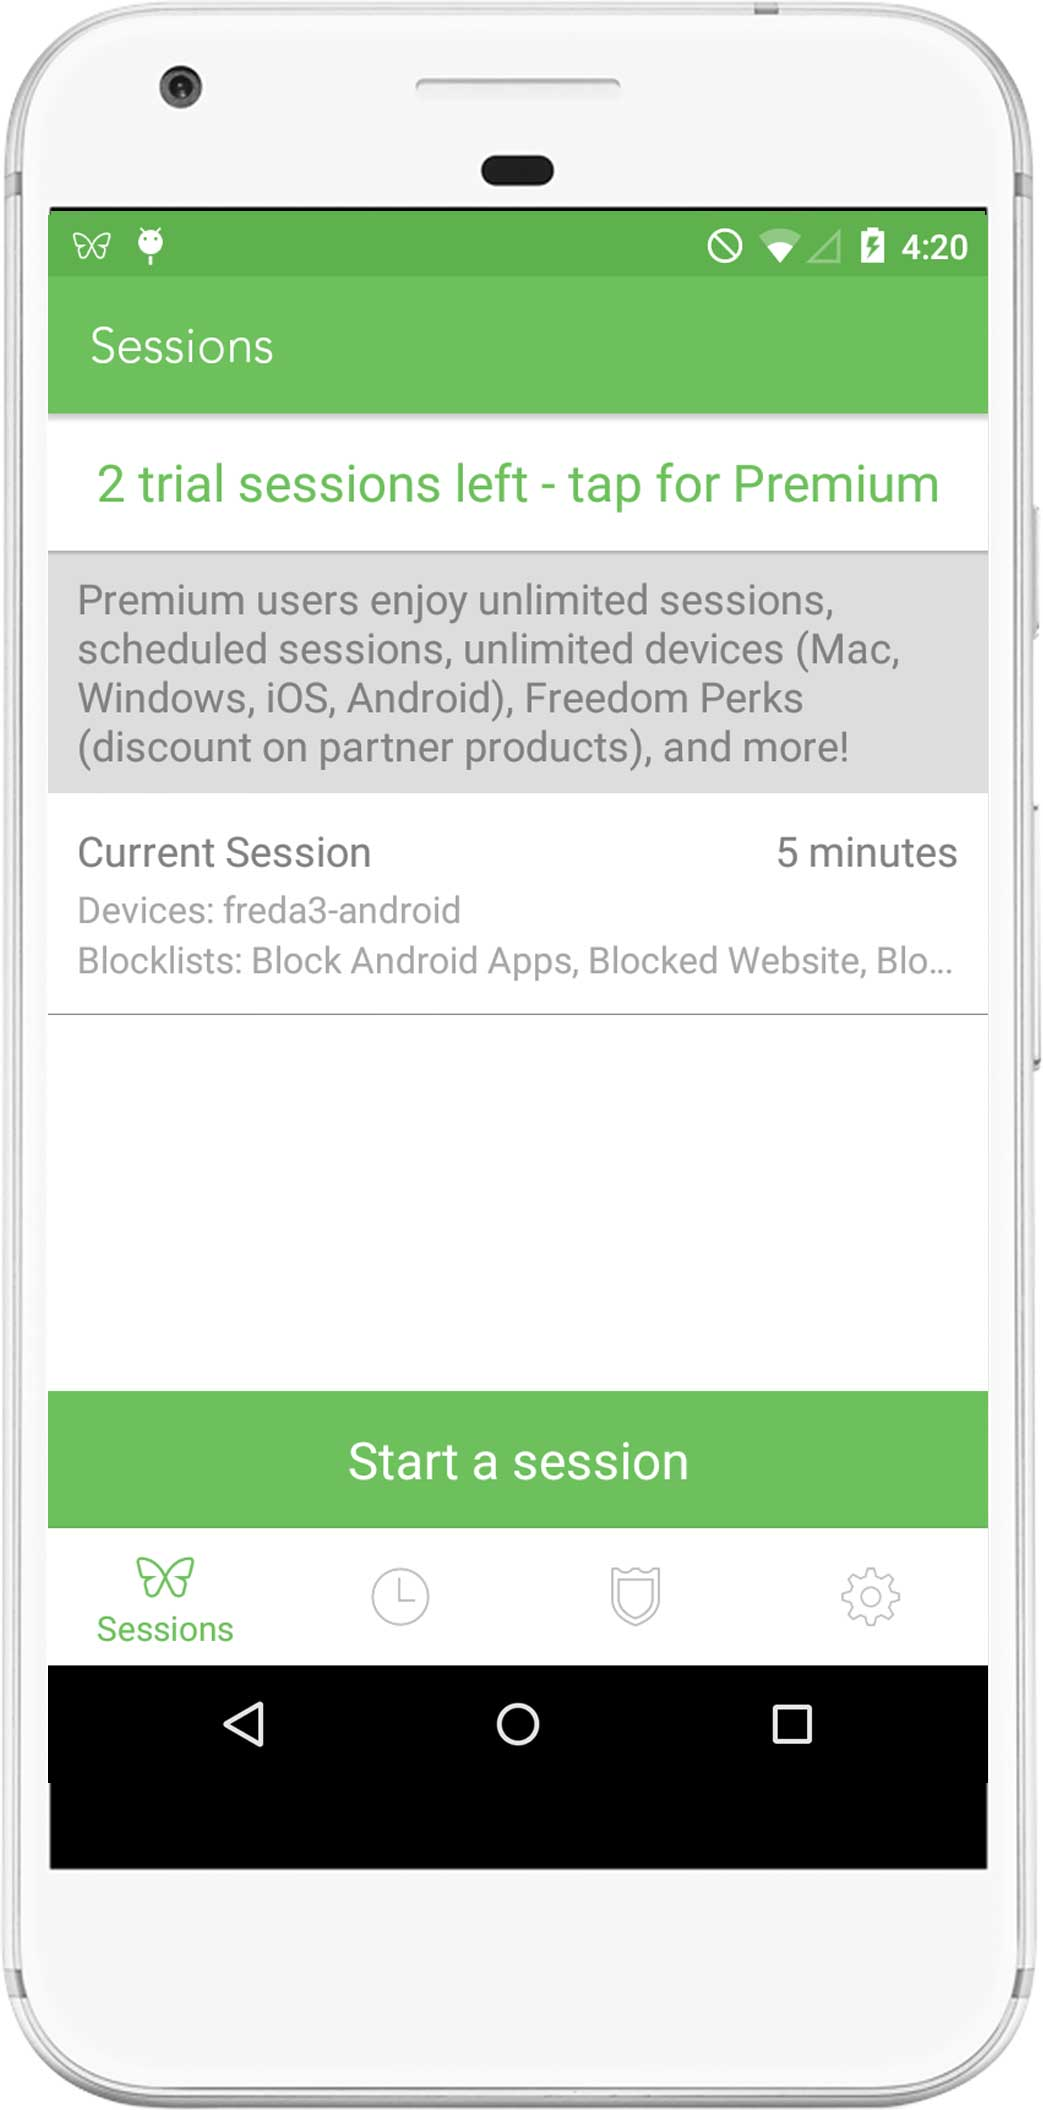 A screenshot showing one active session that is running on multiple devices, showing the time left. A countdown indicates that there are 5 minutes remaining before the session ends.